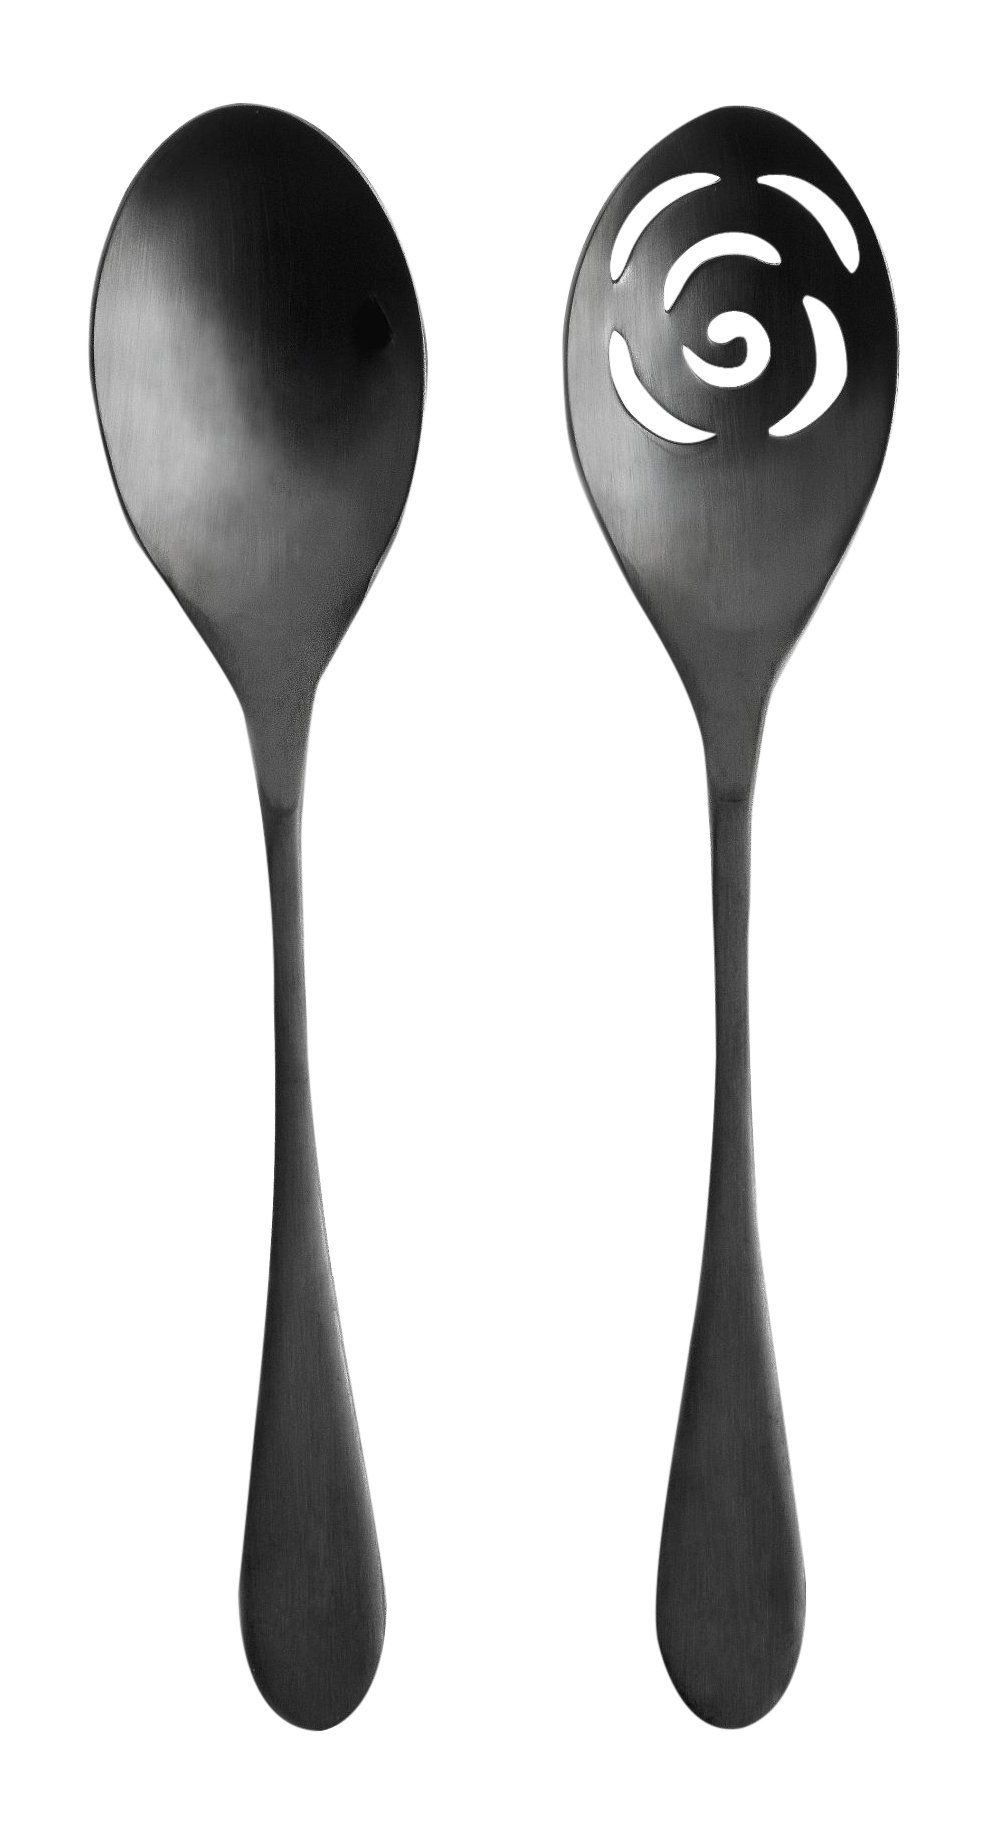 Knork 274 Black Matte Titanium Finish Serving Spoons - Scratch resistant finish, perfect for everyday use Dishwasher safe Hand Forged - kitchen-tabletop, kitchen-dining-room, flatware - 61YxyOKF9oL -